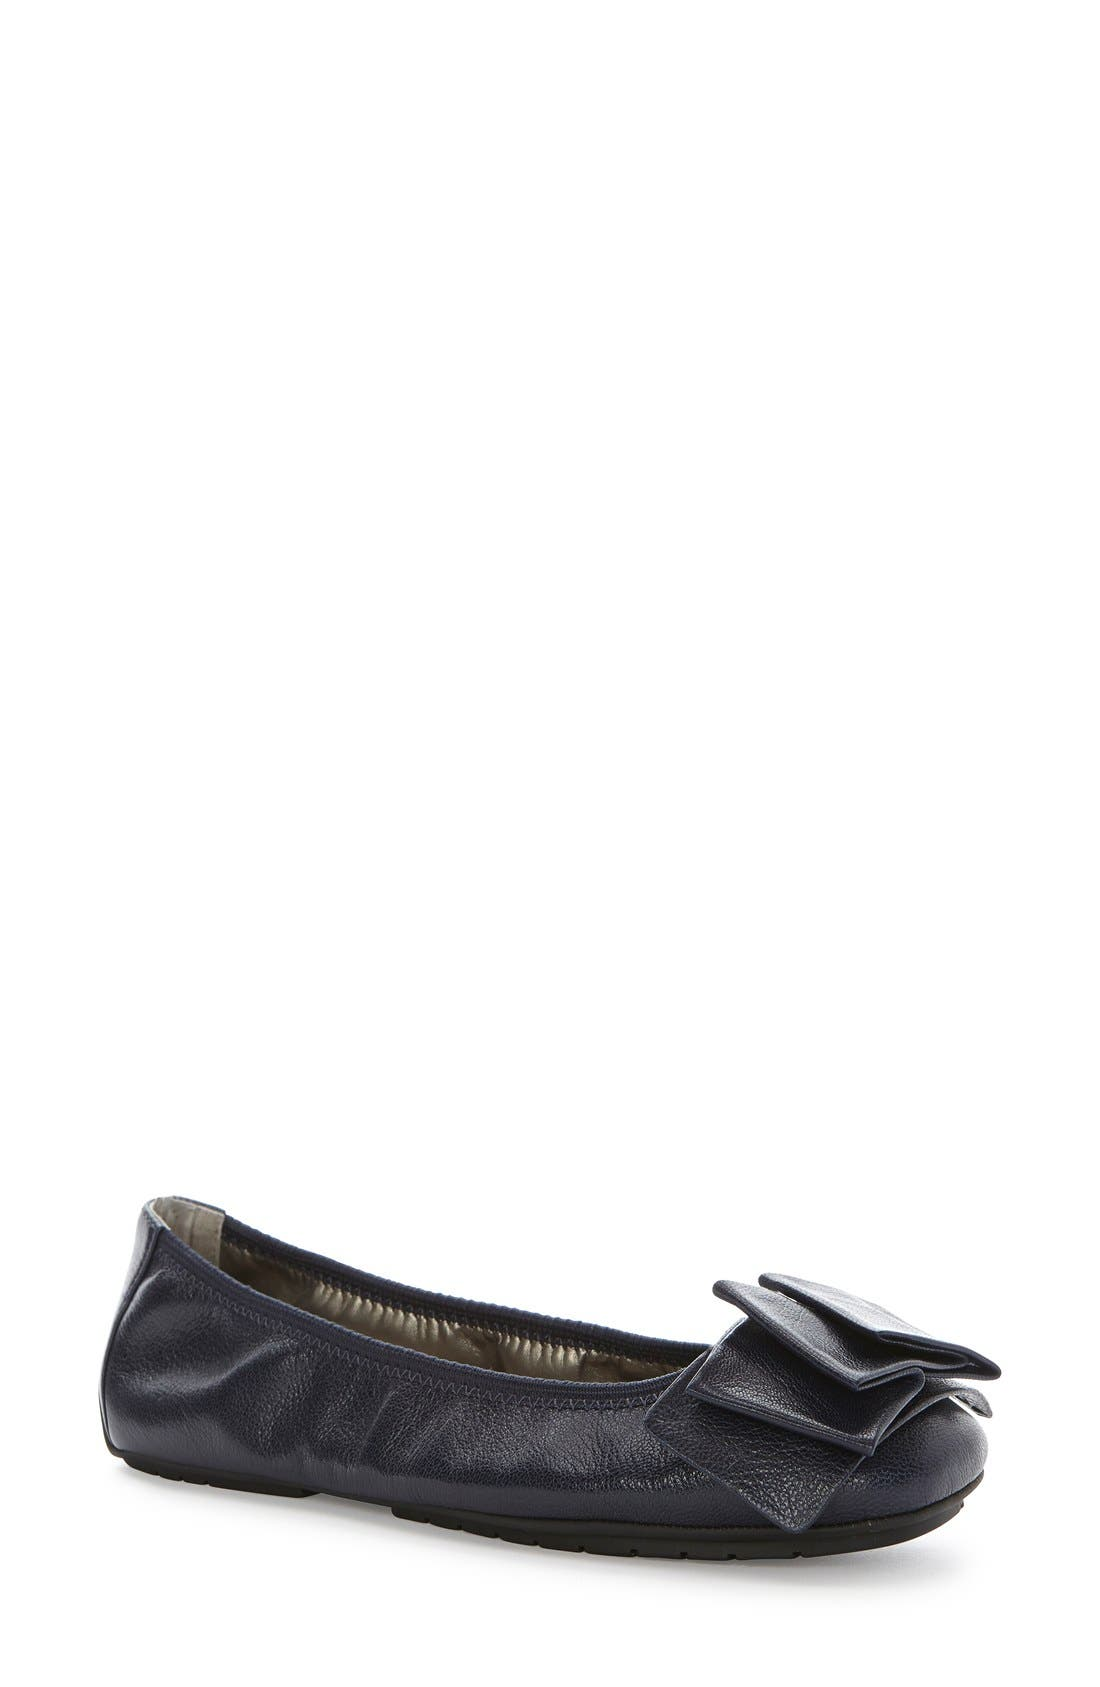 'Lilyana 2.0' Flat,                             Main thumbnail 1, color,                             Navy Leather